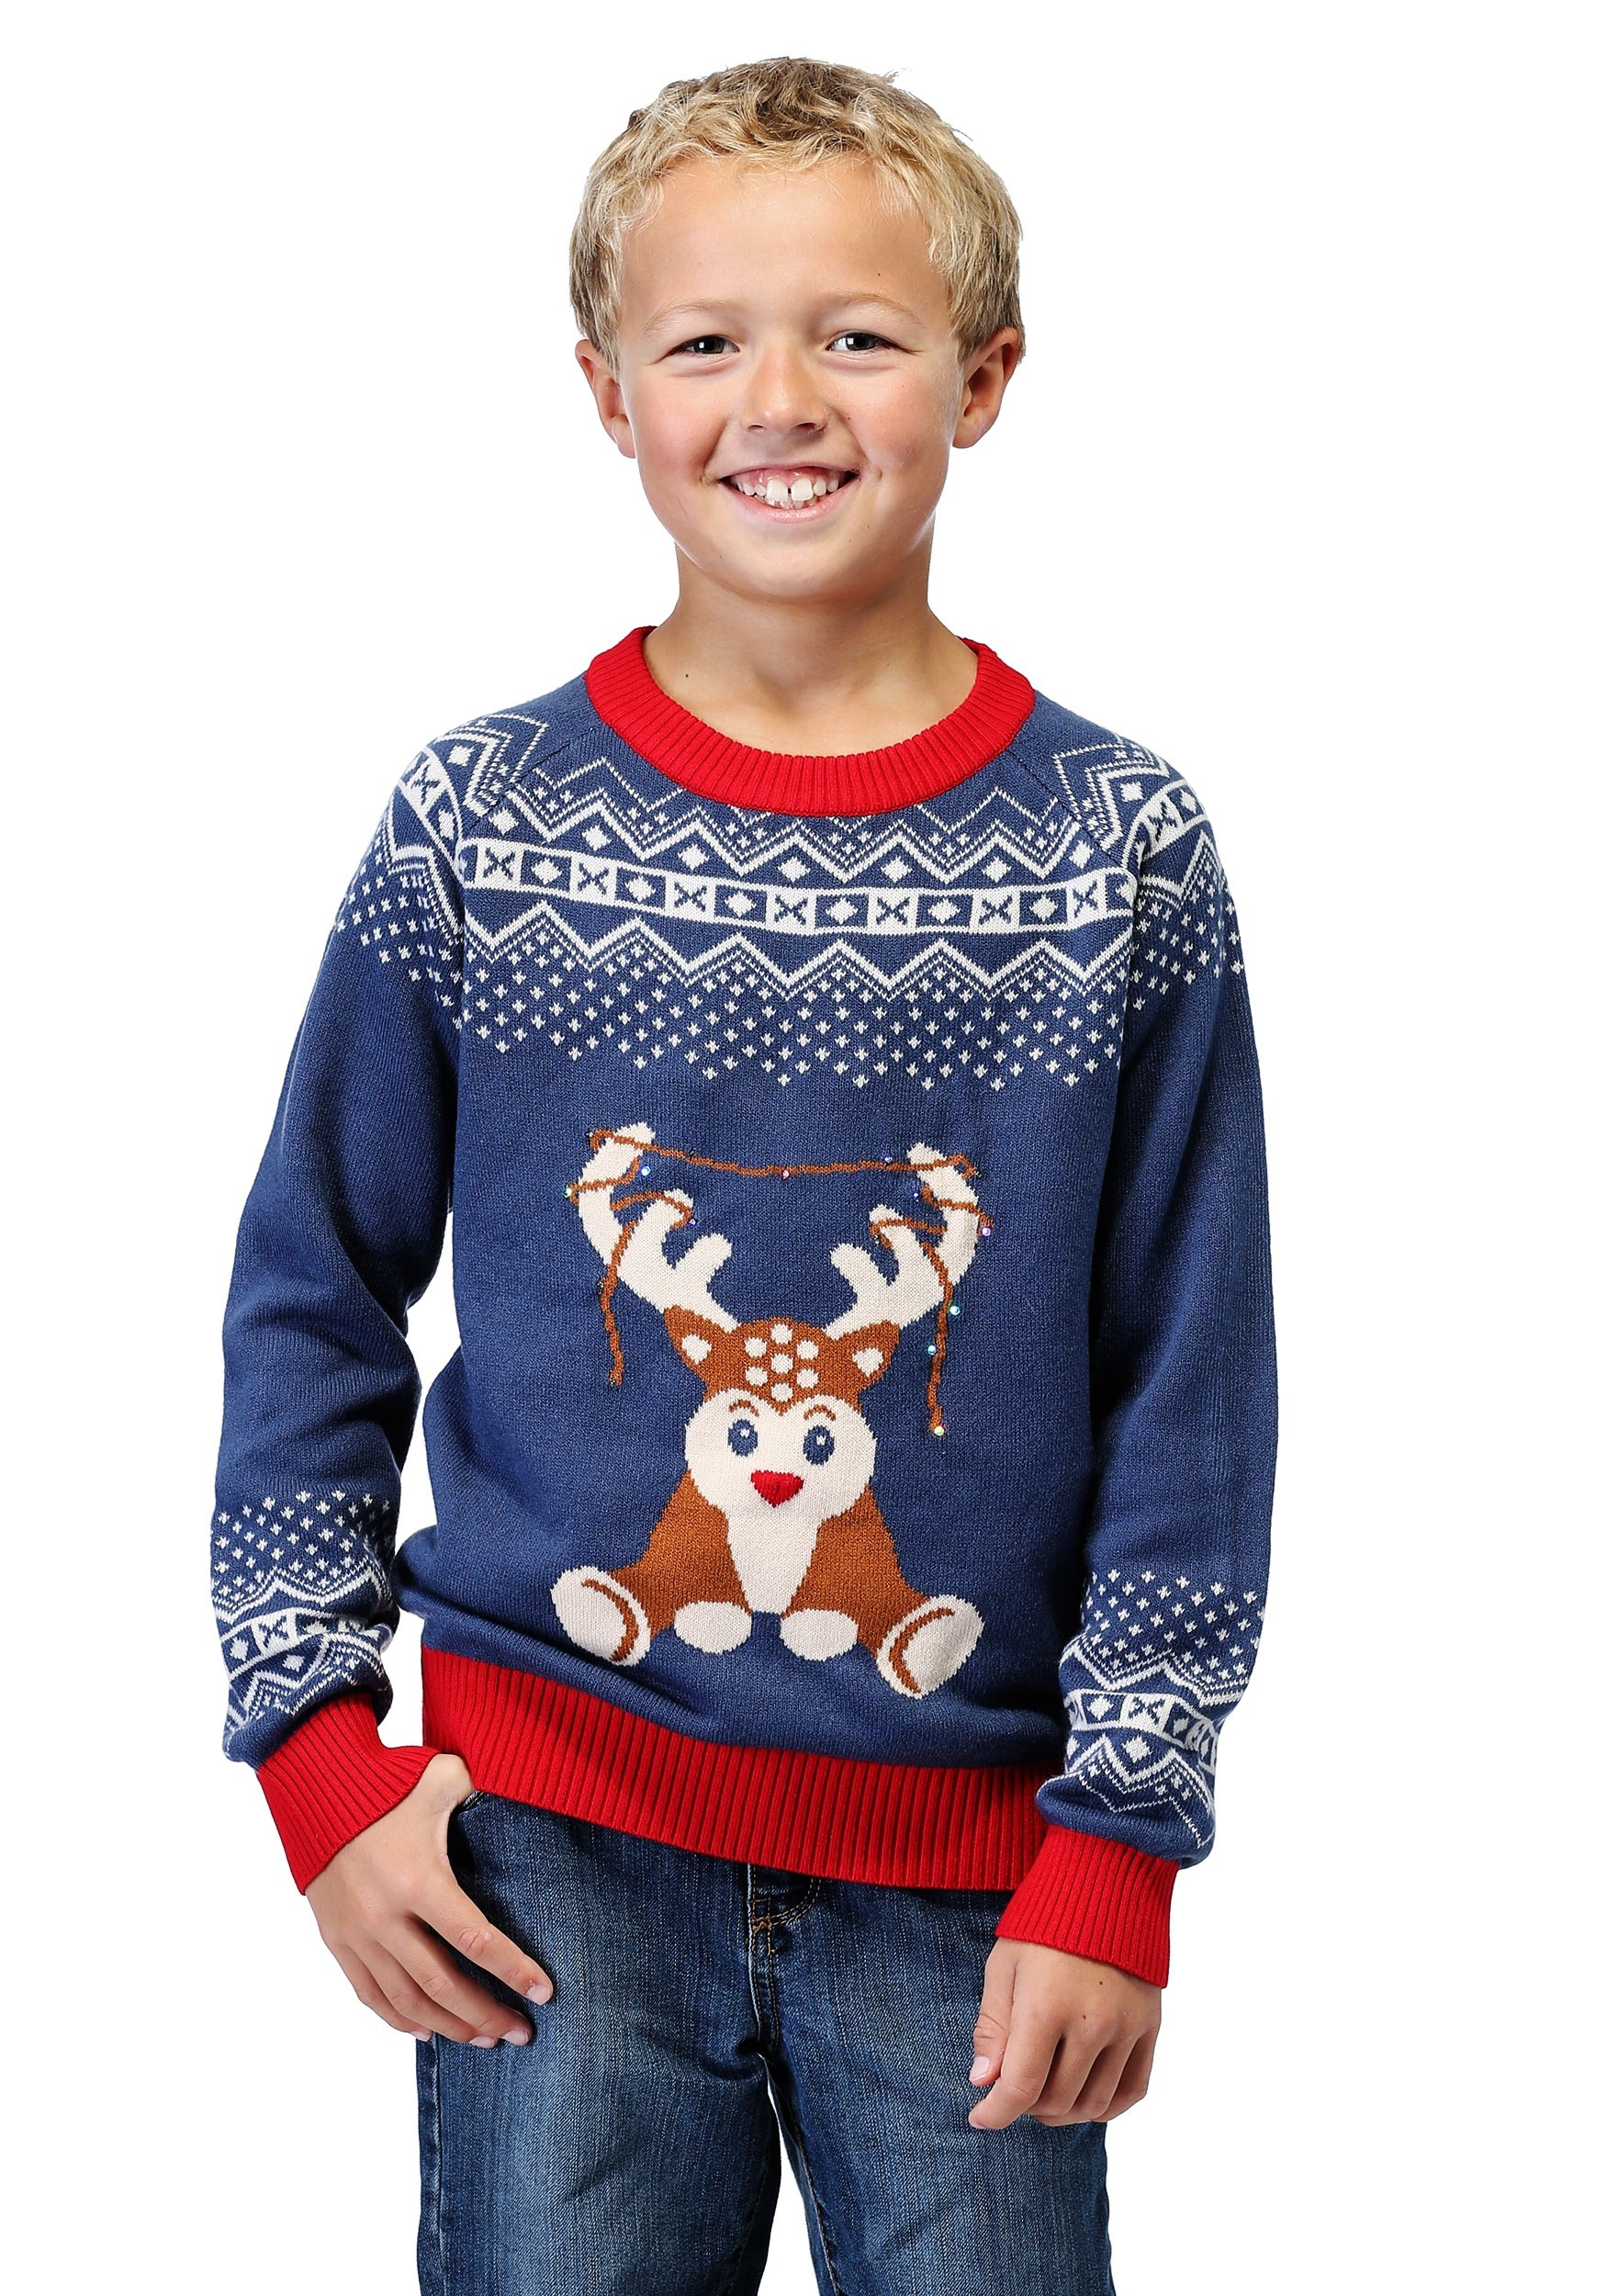 17355cdd1a7f6 Reindeer LED Light Up Ugly Christmas Sweater for Boys